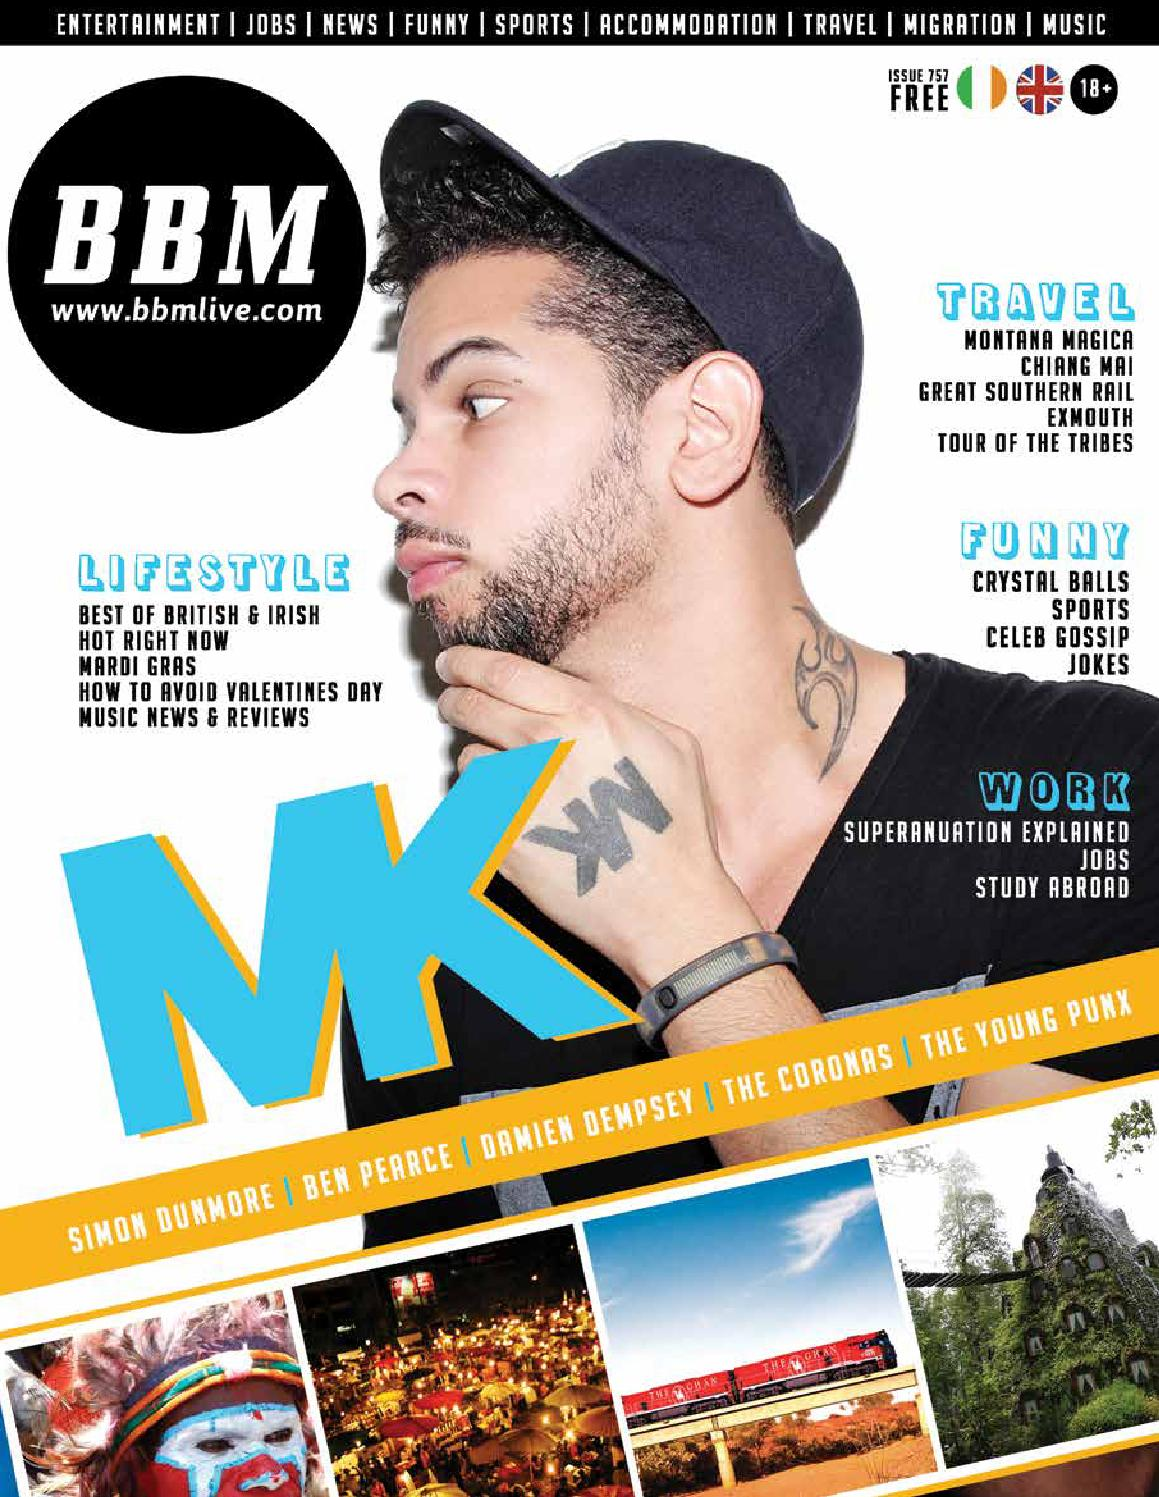 BBM February issue 757